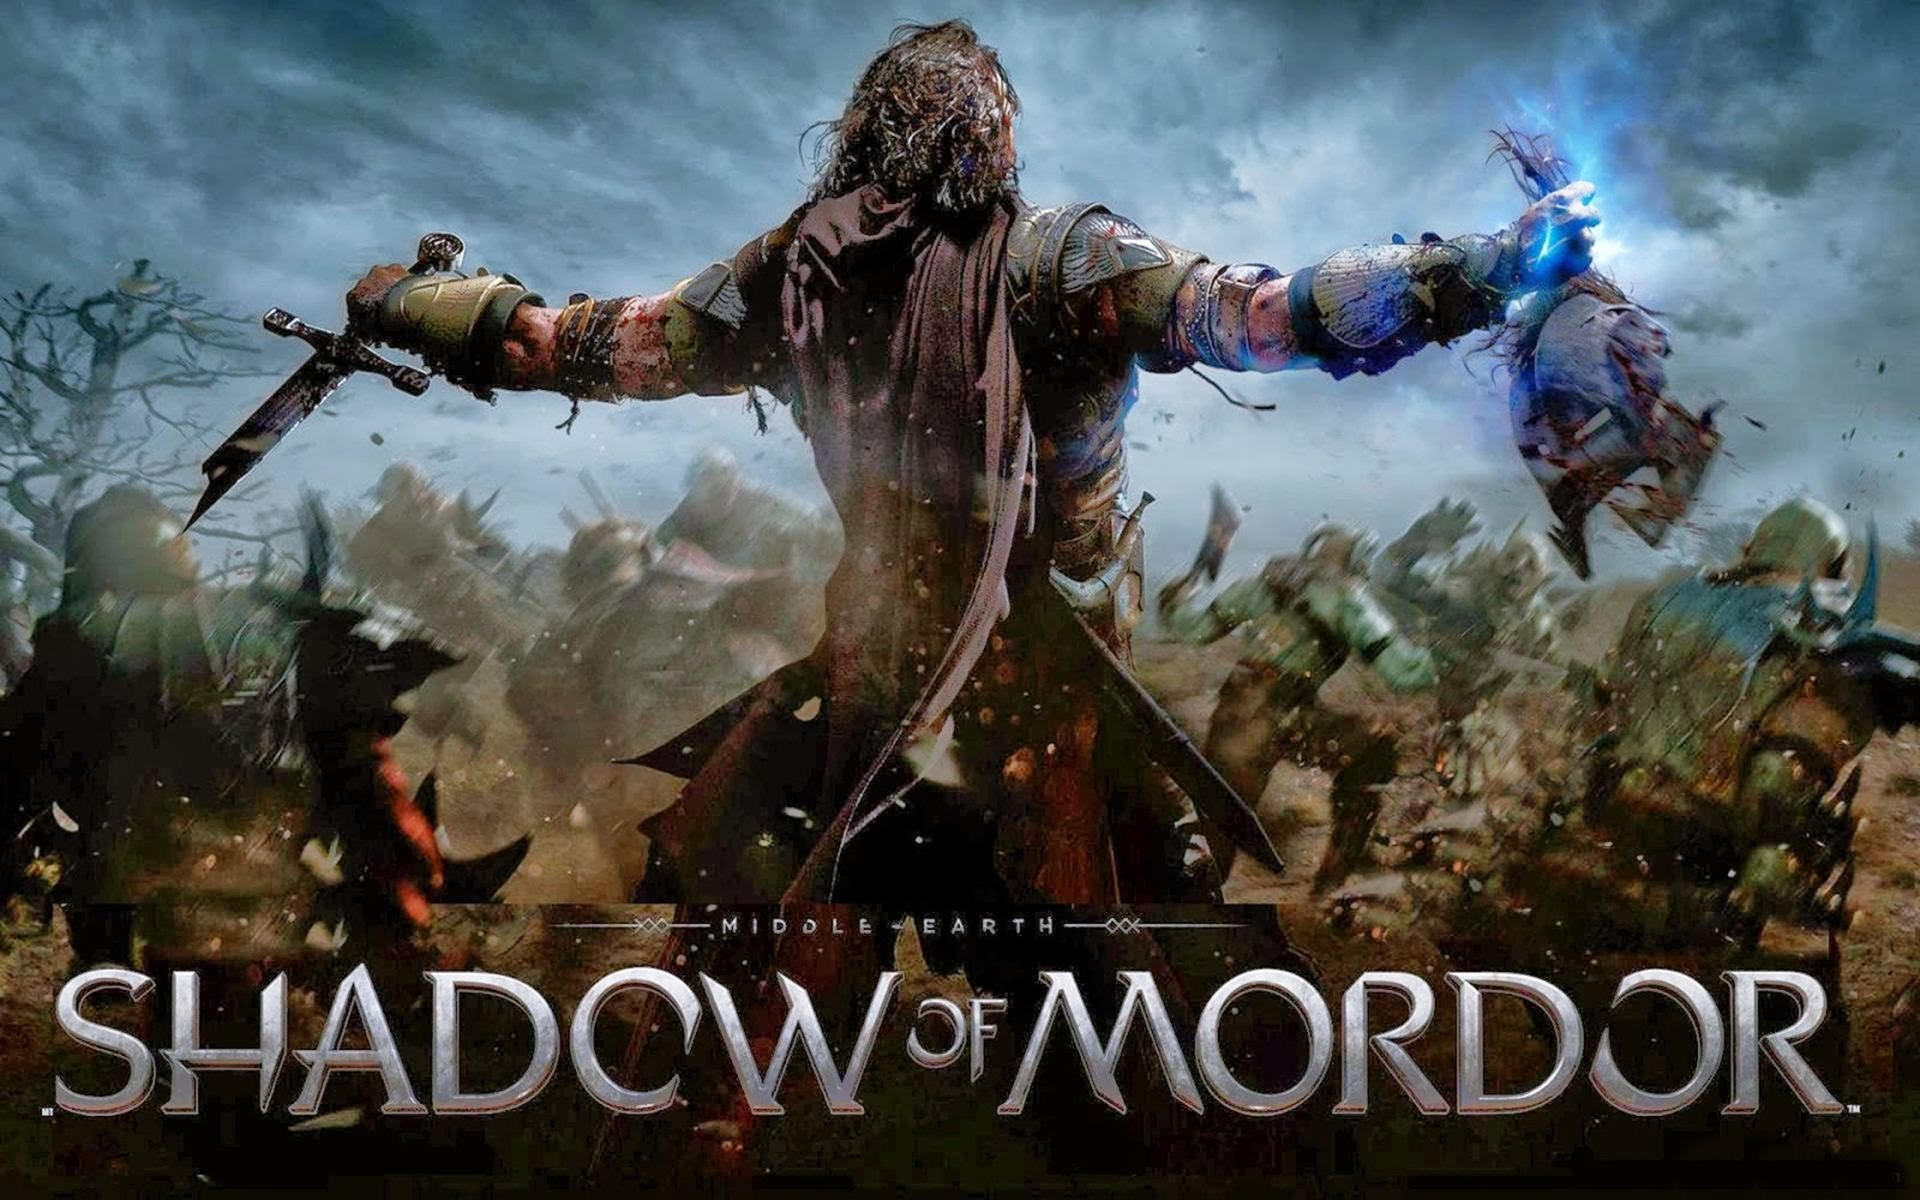 Iphone S C Middleearth Shadow Of Mordor Wallpapers Hd 1920x1200